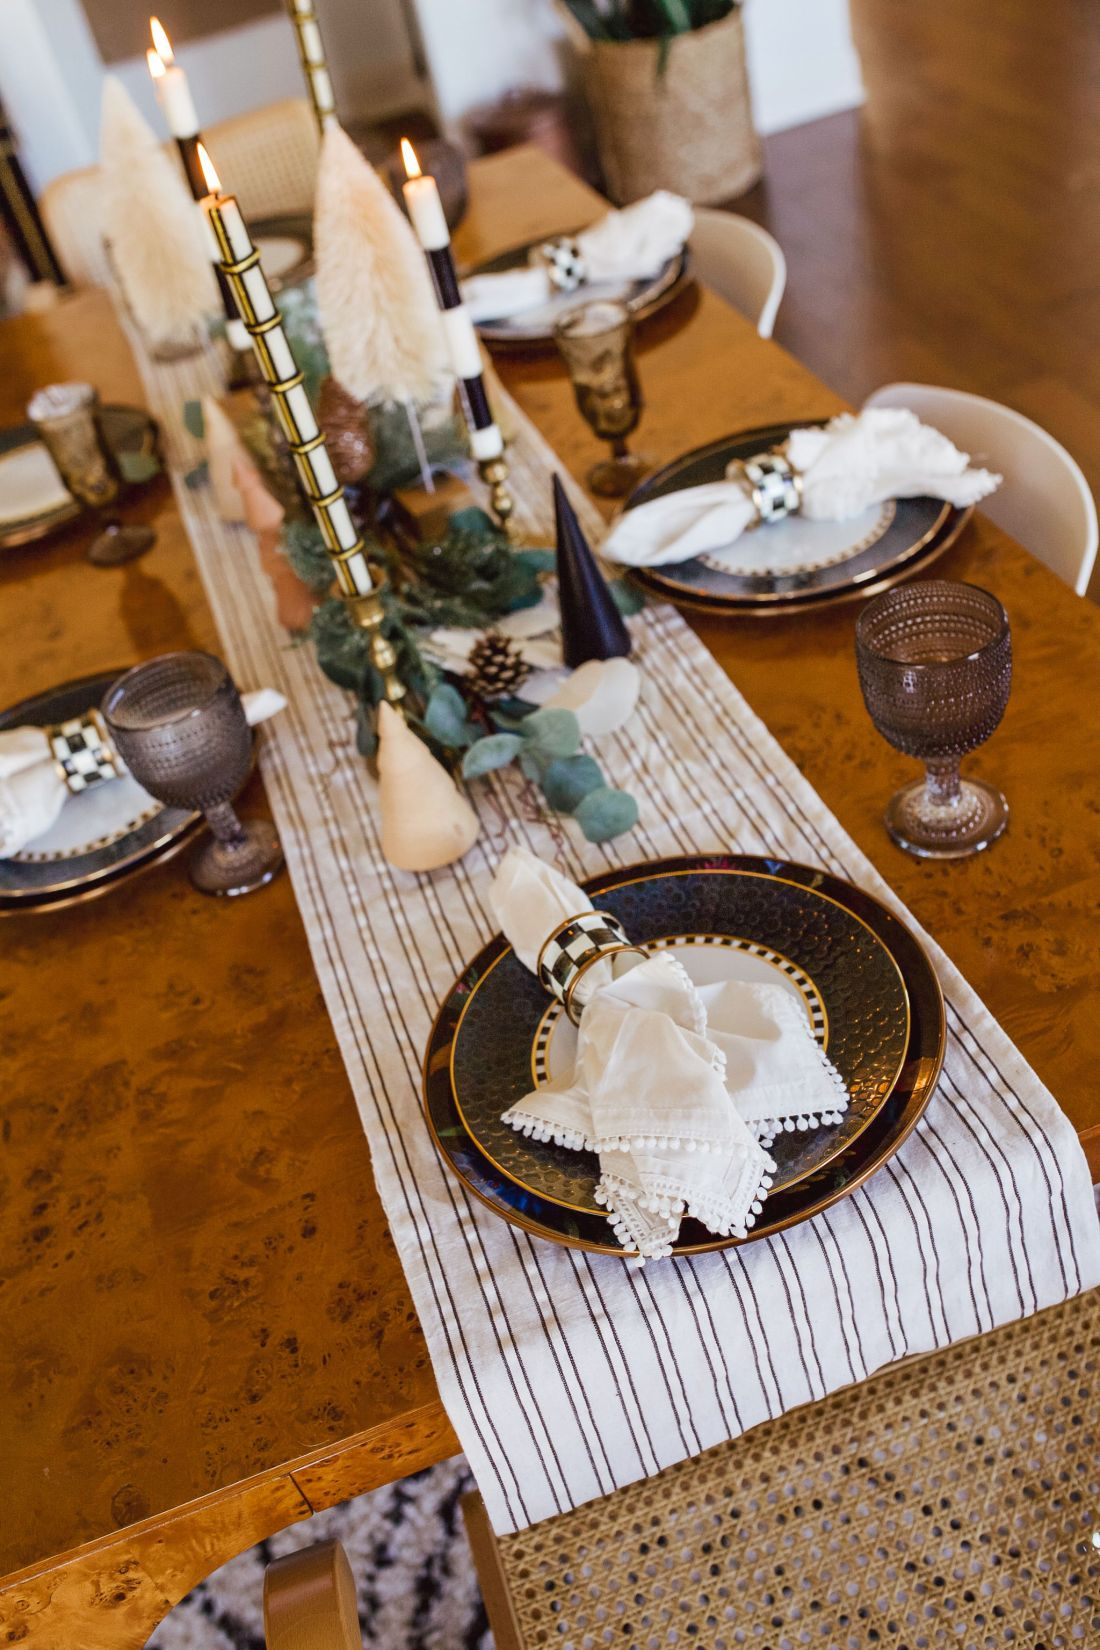 Christmas Tablescape Ideas by popular Nashville life and style blog, Modern Day Moguls: image of a table set with a stripe table runner, blue and gold trim plates, white cloth napkins with Mackenzie-Childs napkin rings, eucalyptus garland, black and white stripe candlesticks, and black hobnail glasses.